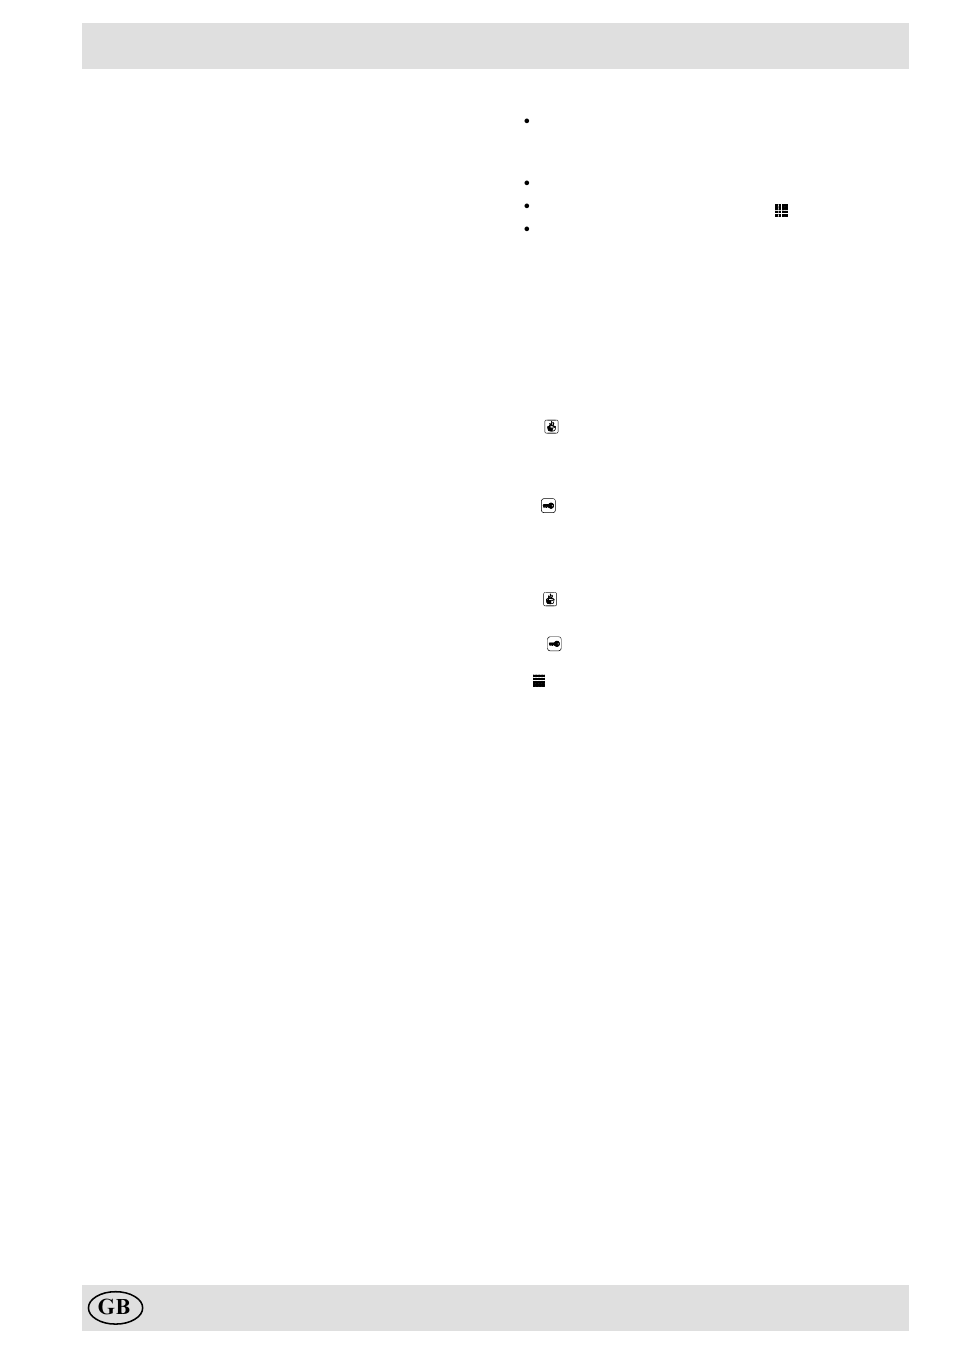 Cleaning by pyrolysis | Indesit FM 70 P 1 MR User Manual | Page 6 / 12